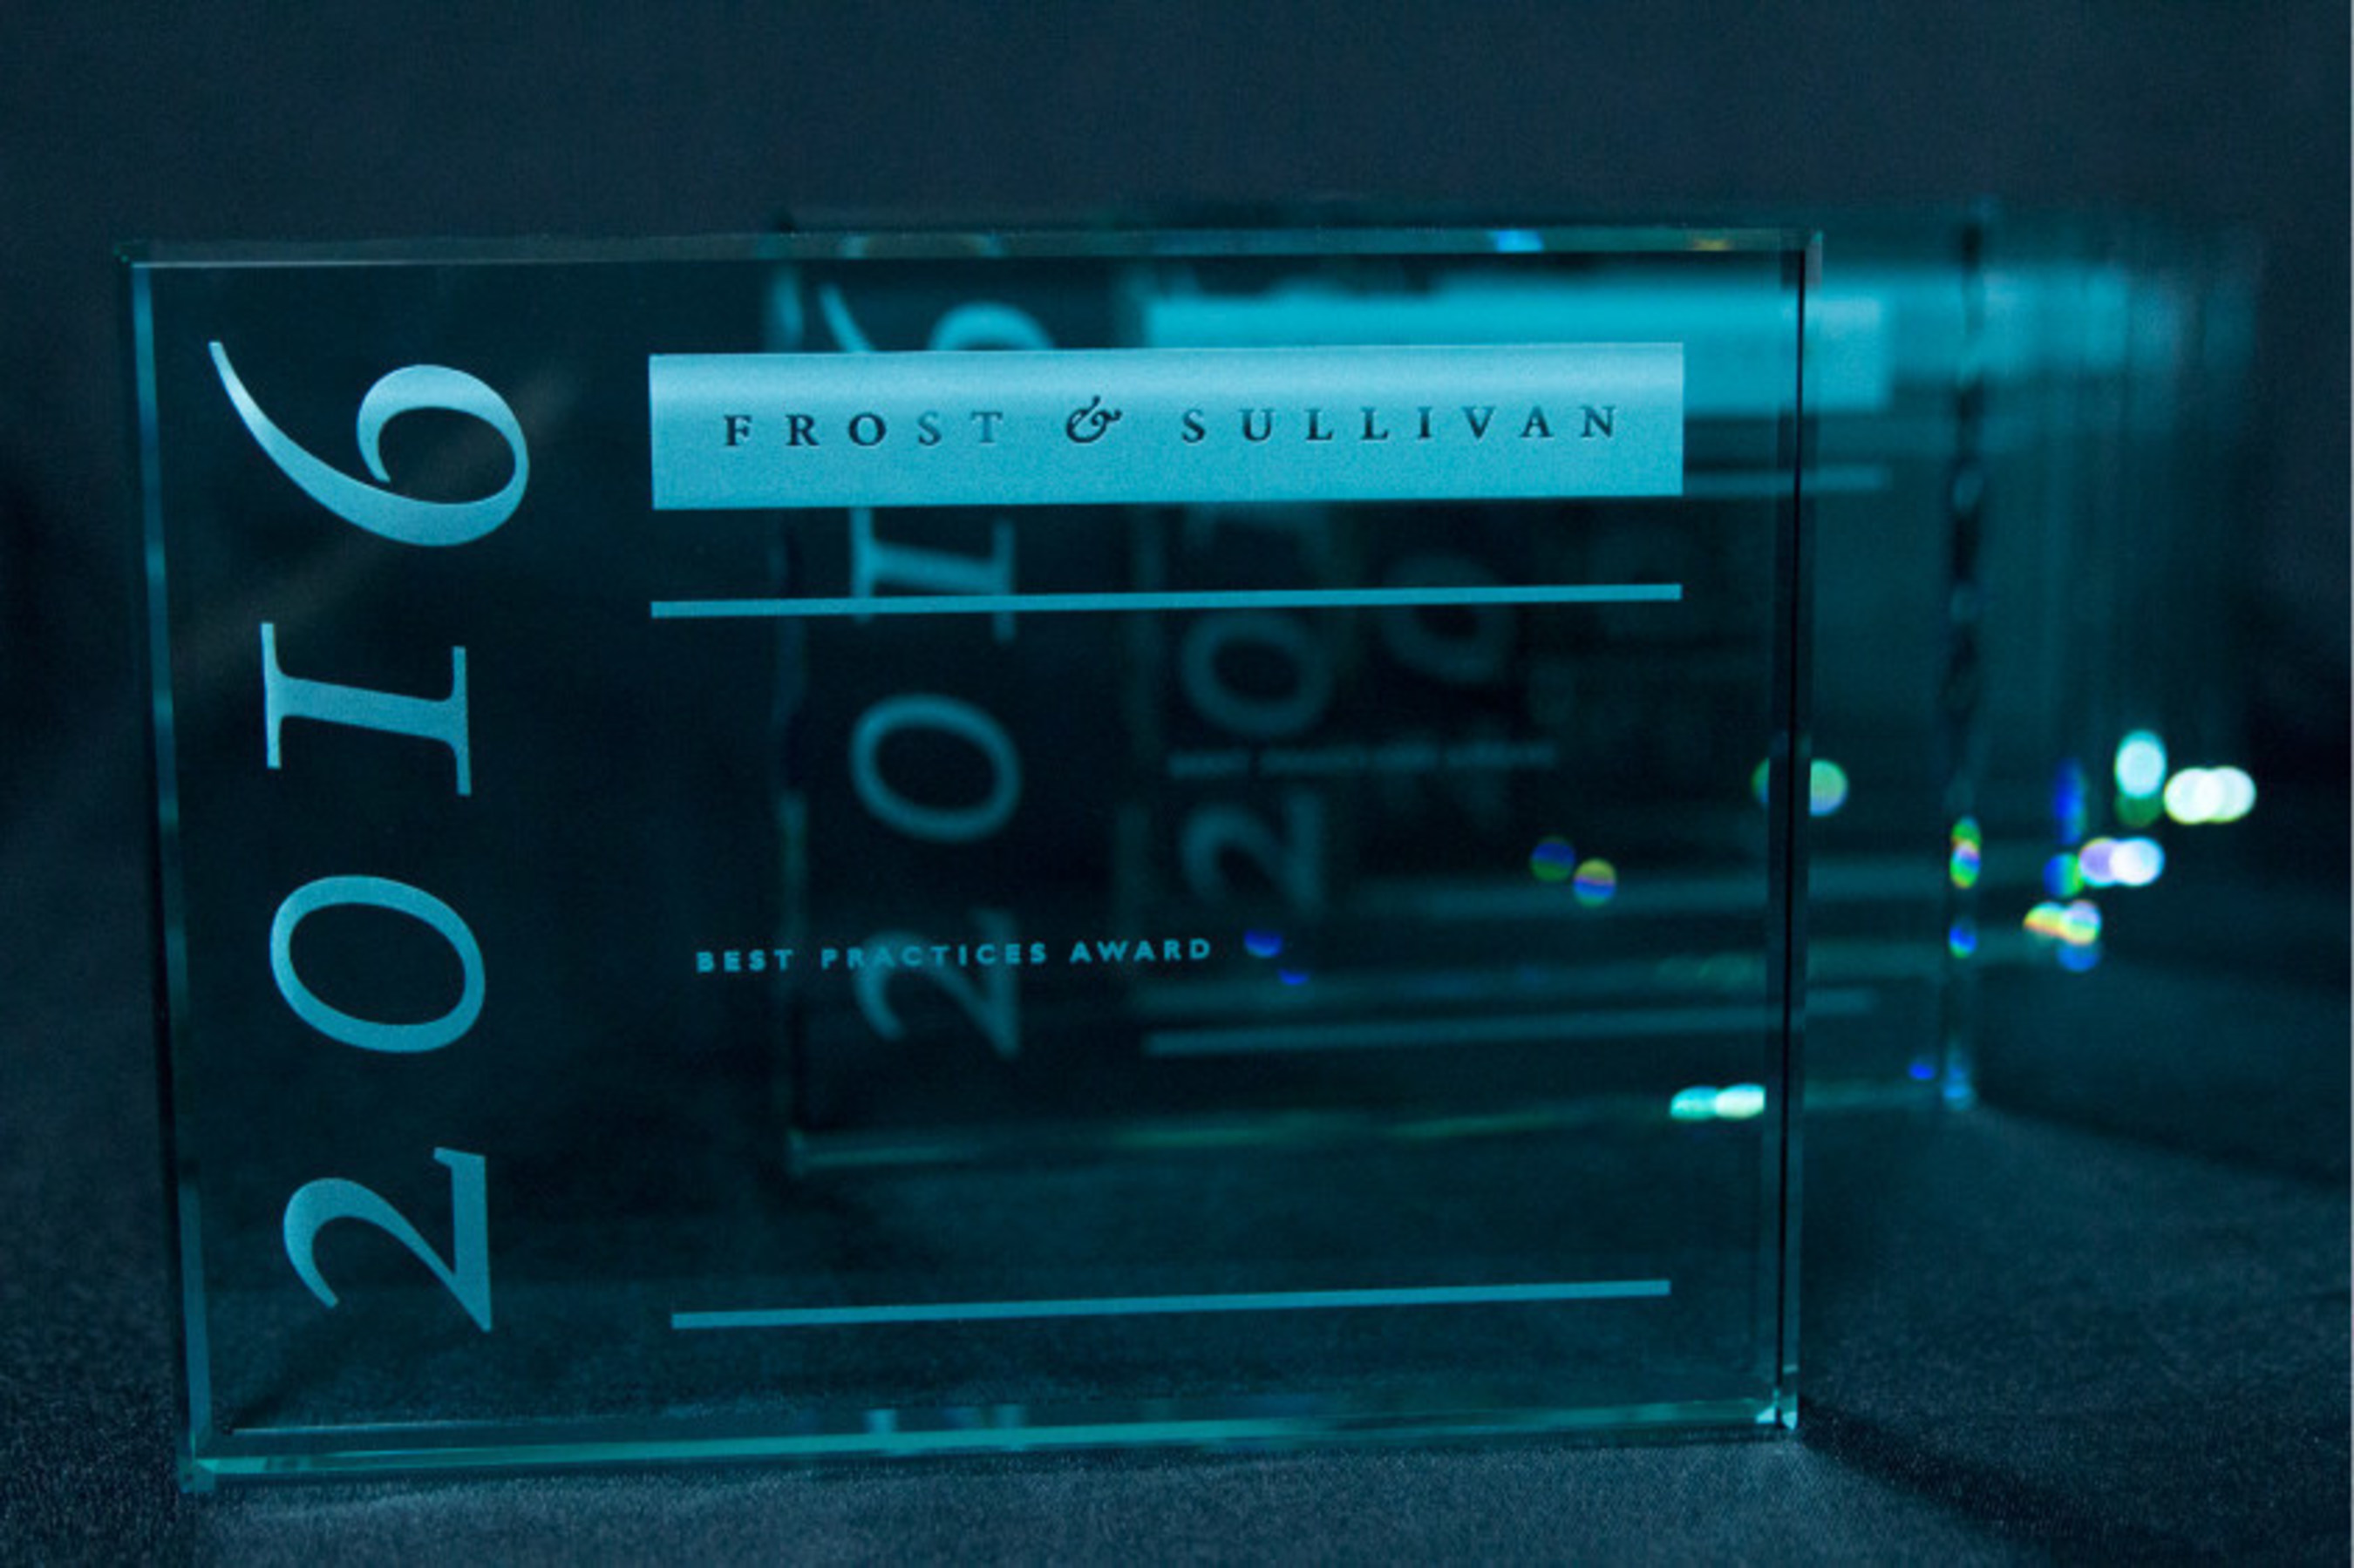 Frost & Sullivan honored recipients of its 2016 Excellence in Best Practices Awards at a gala held Wednesday, January 13, in San Diego, Calif., at the Hilton San Diego Resort & Spa.